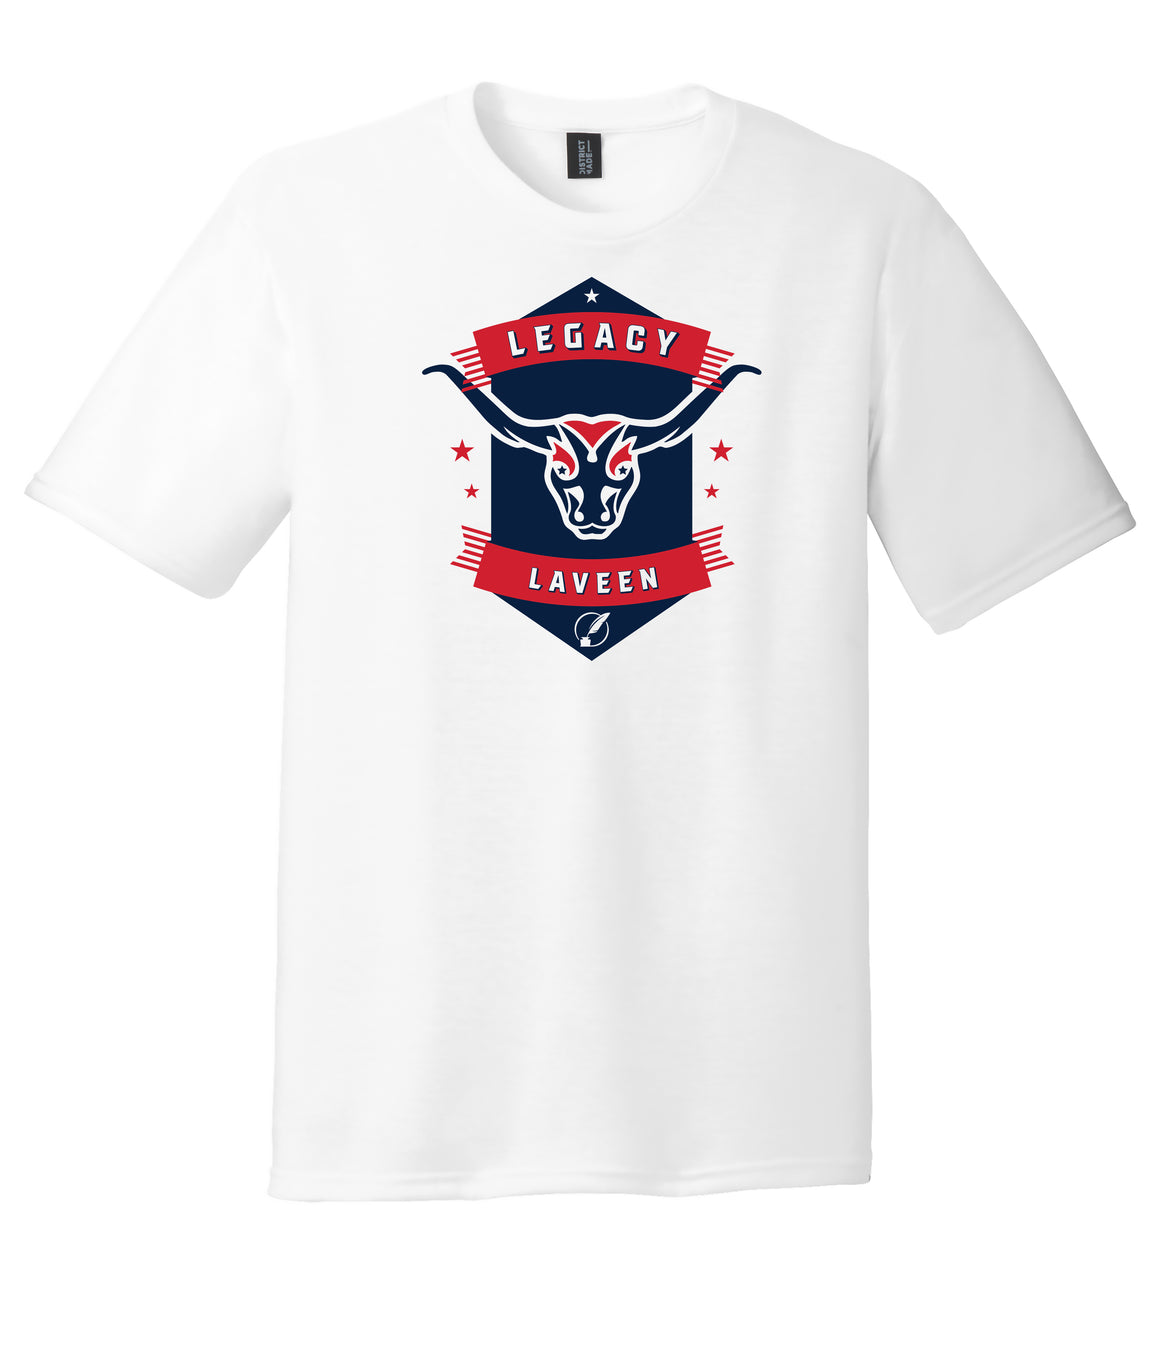 Legacy Traditional School Laveen - White Spirit Day Shirt w/Mascot